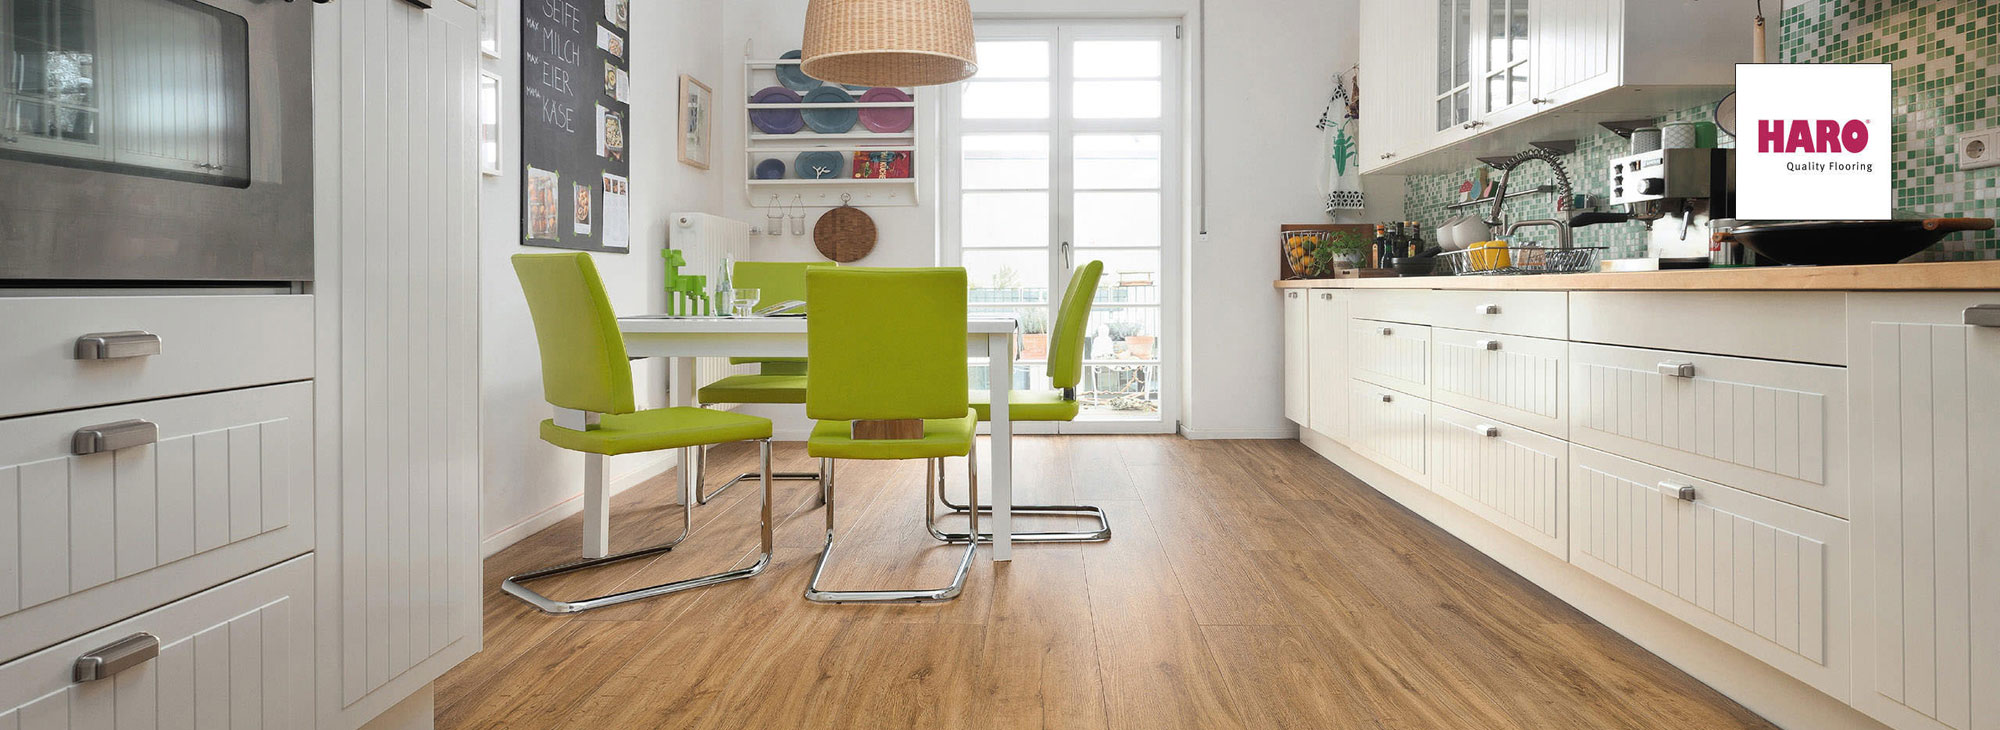 Header - HARO Hamberger Flooring GmbH & Co. KG